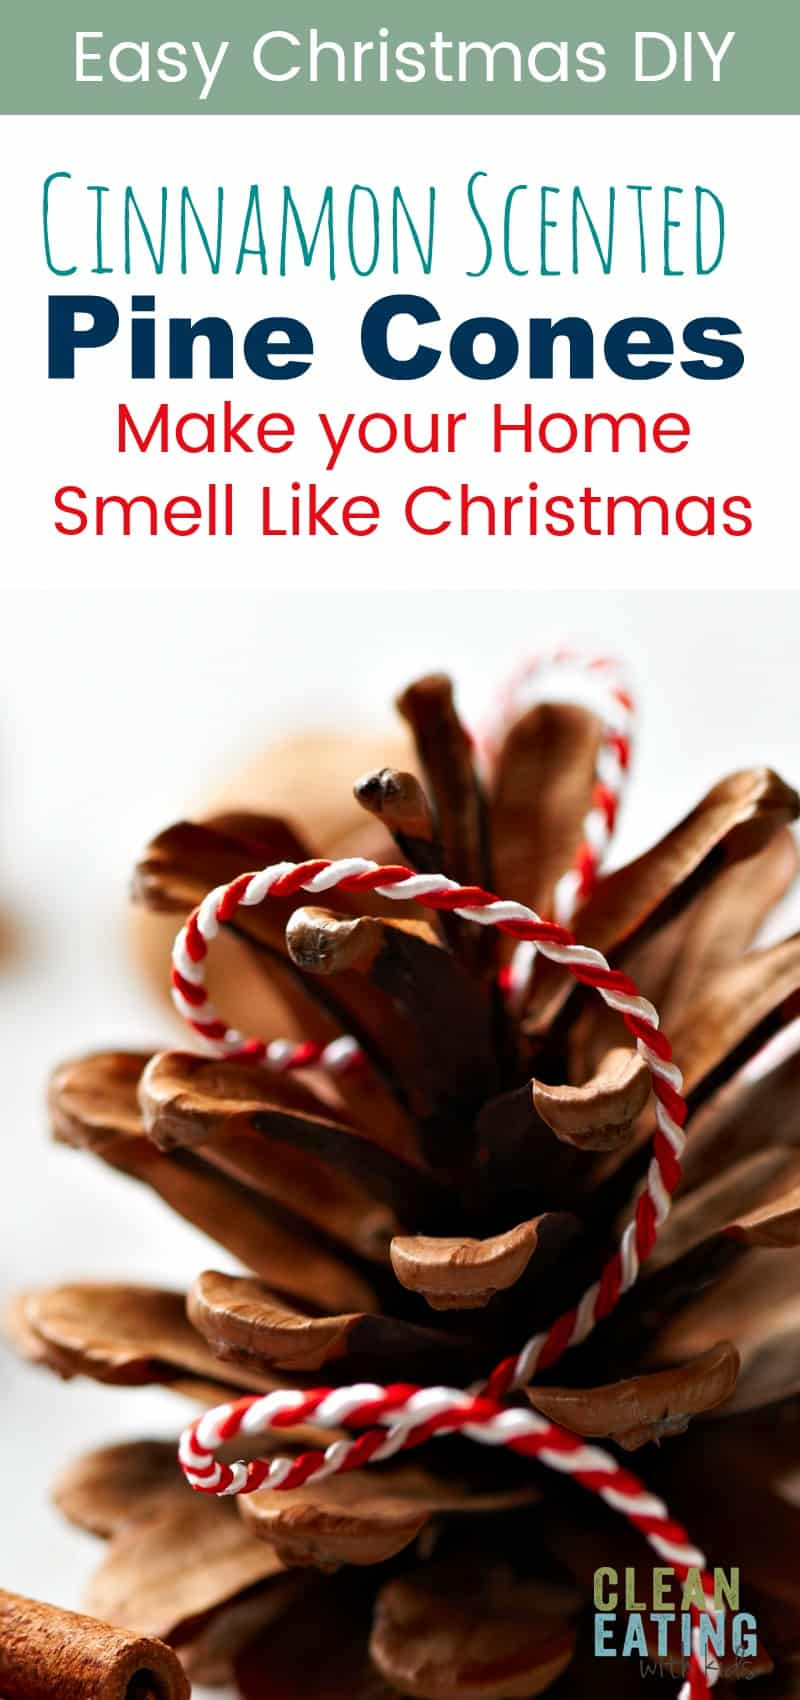 Easy Christmas DIY - cinnamon scented pine cones. These make awesome cheap Christmas gifts too!